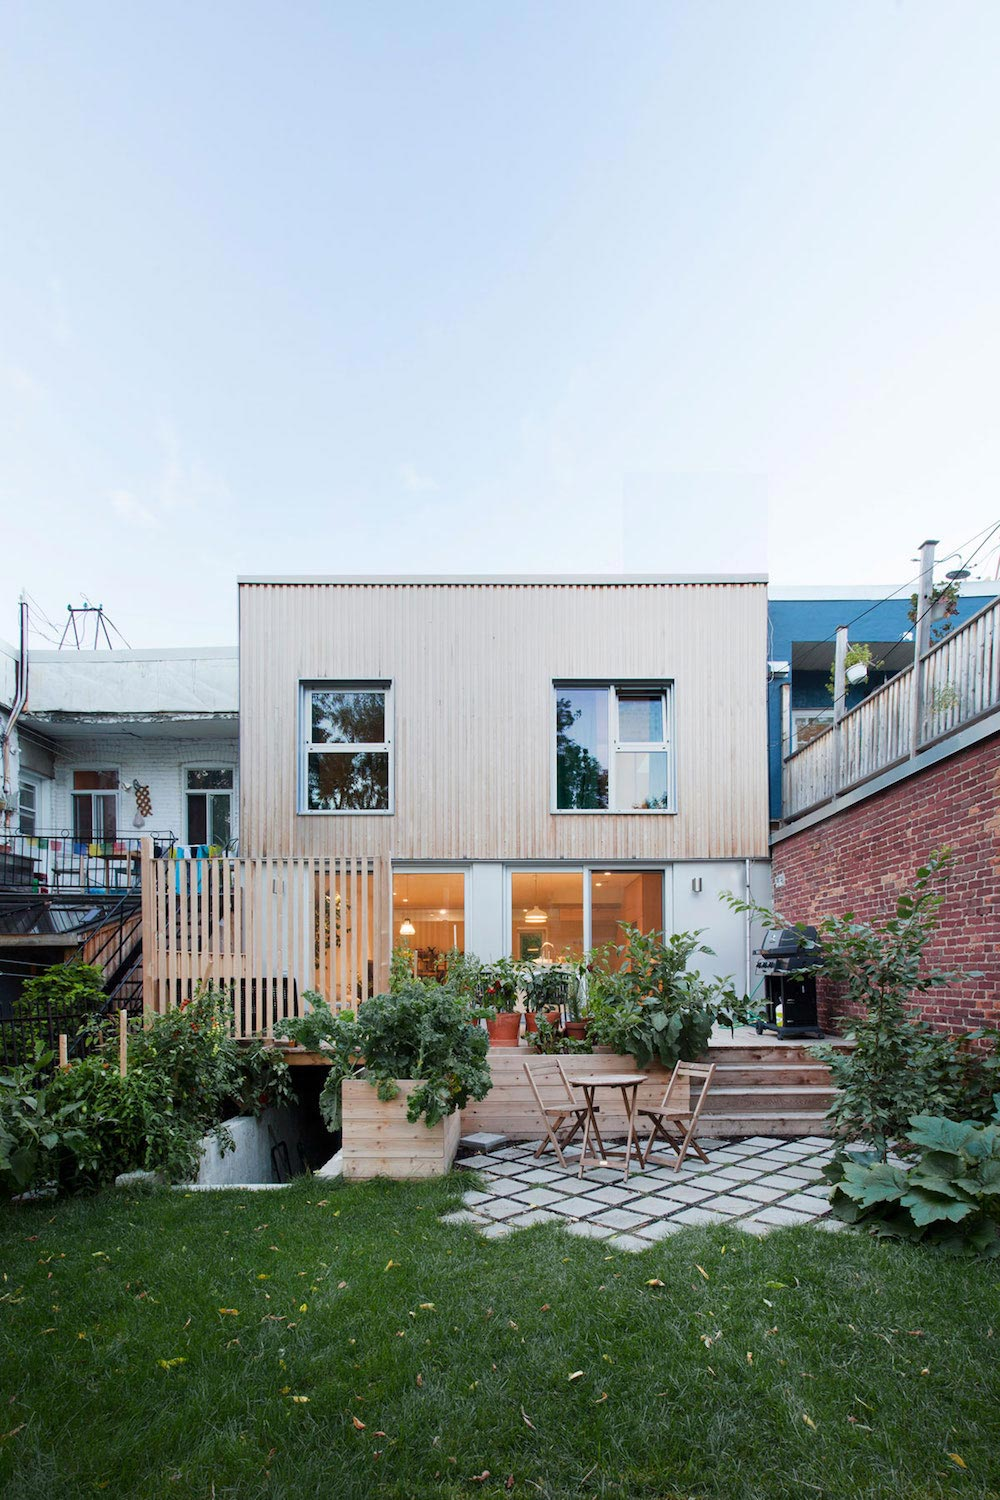 Minimalist, uncluttered and Nordic style for the renovation of a typical Montreal duplex